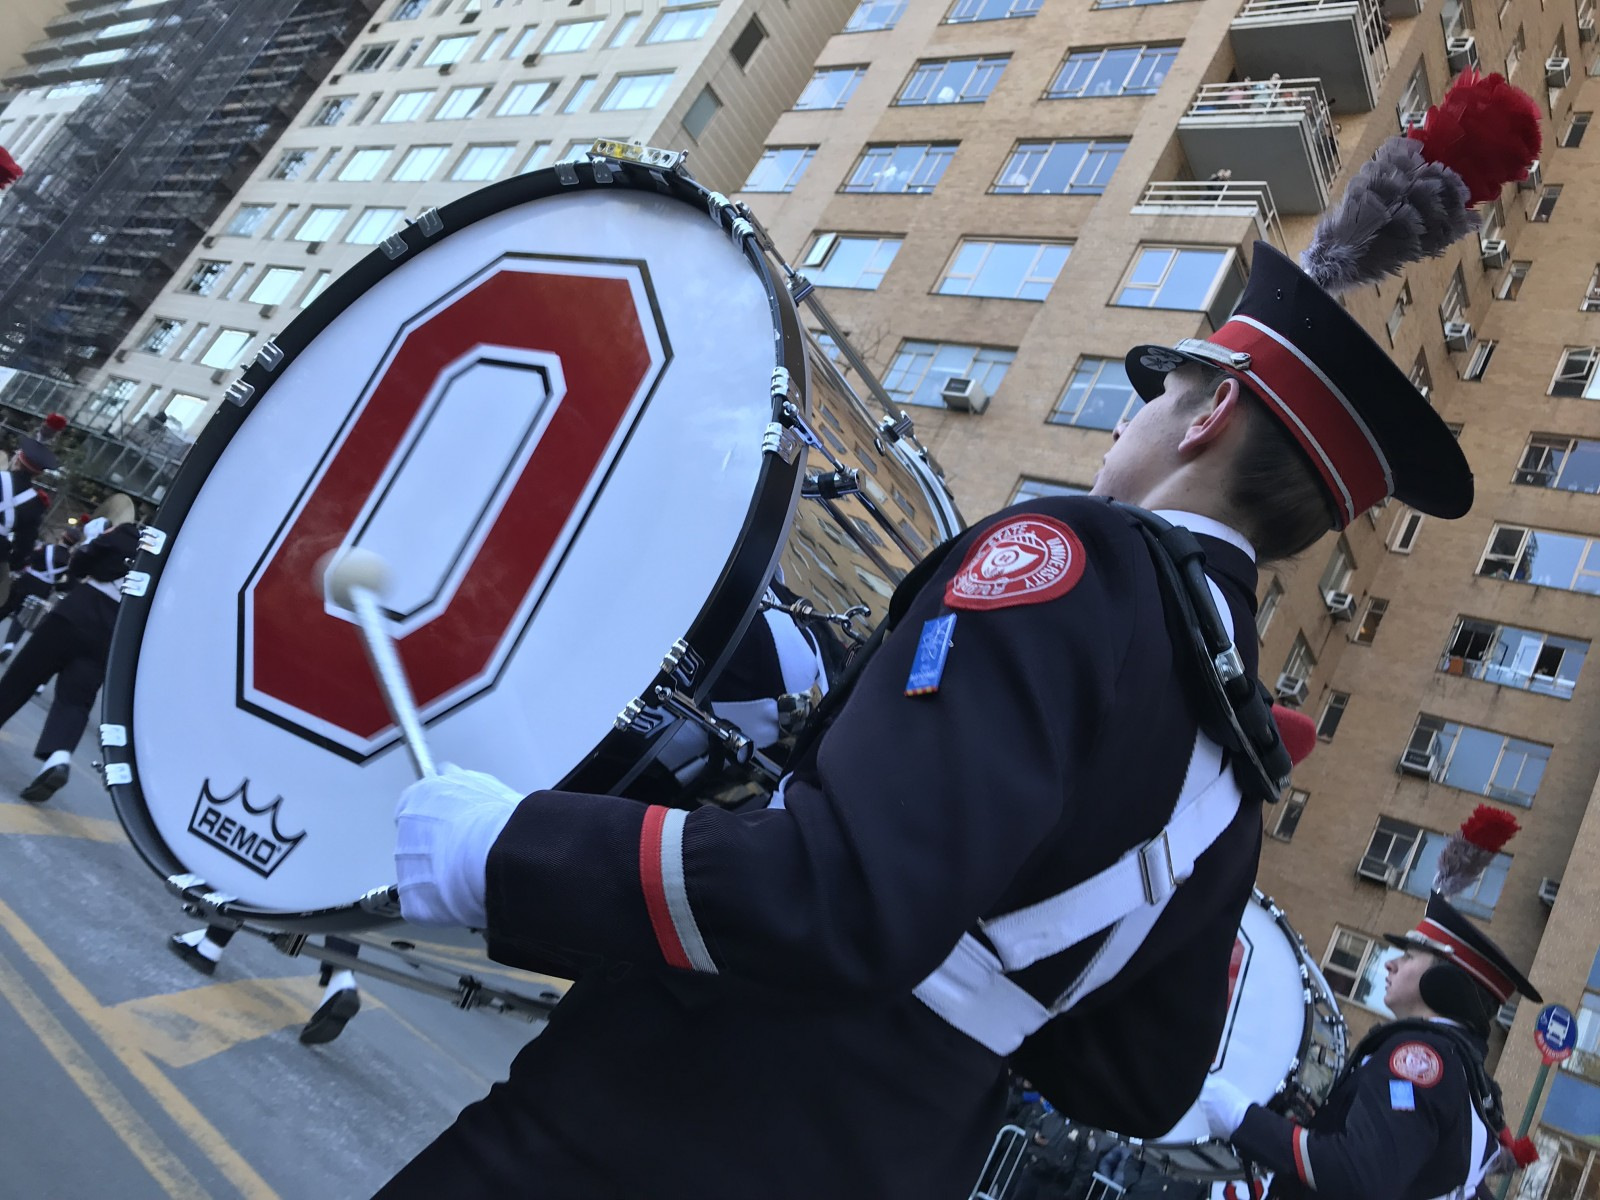 The Ohio State University Marching Band at the Macy's Parade